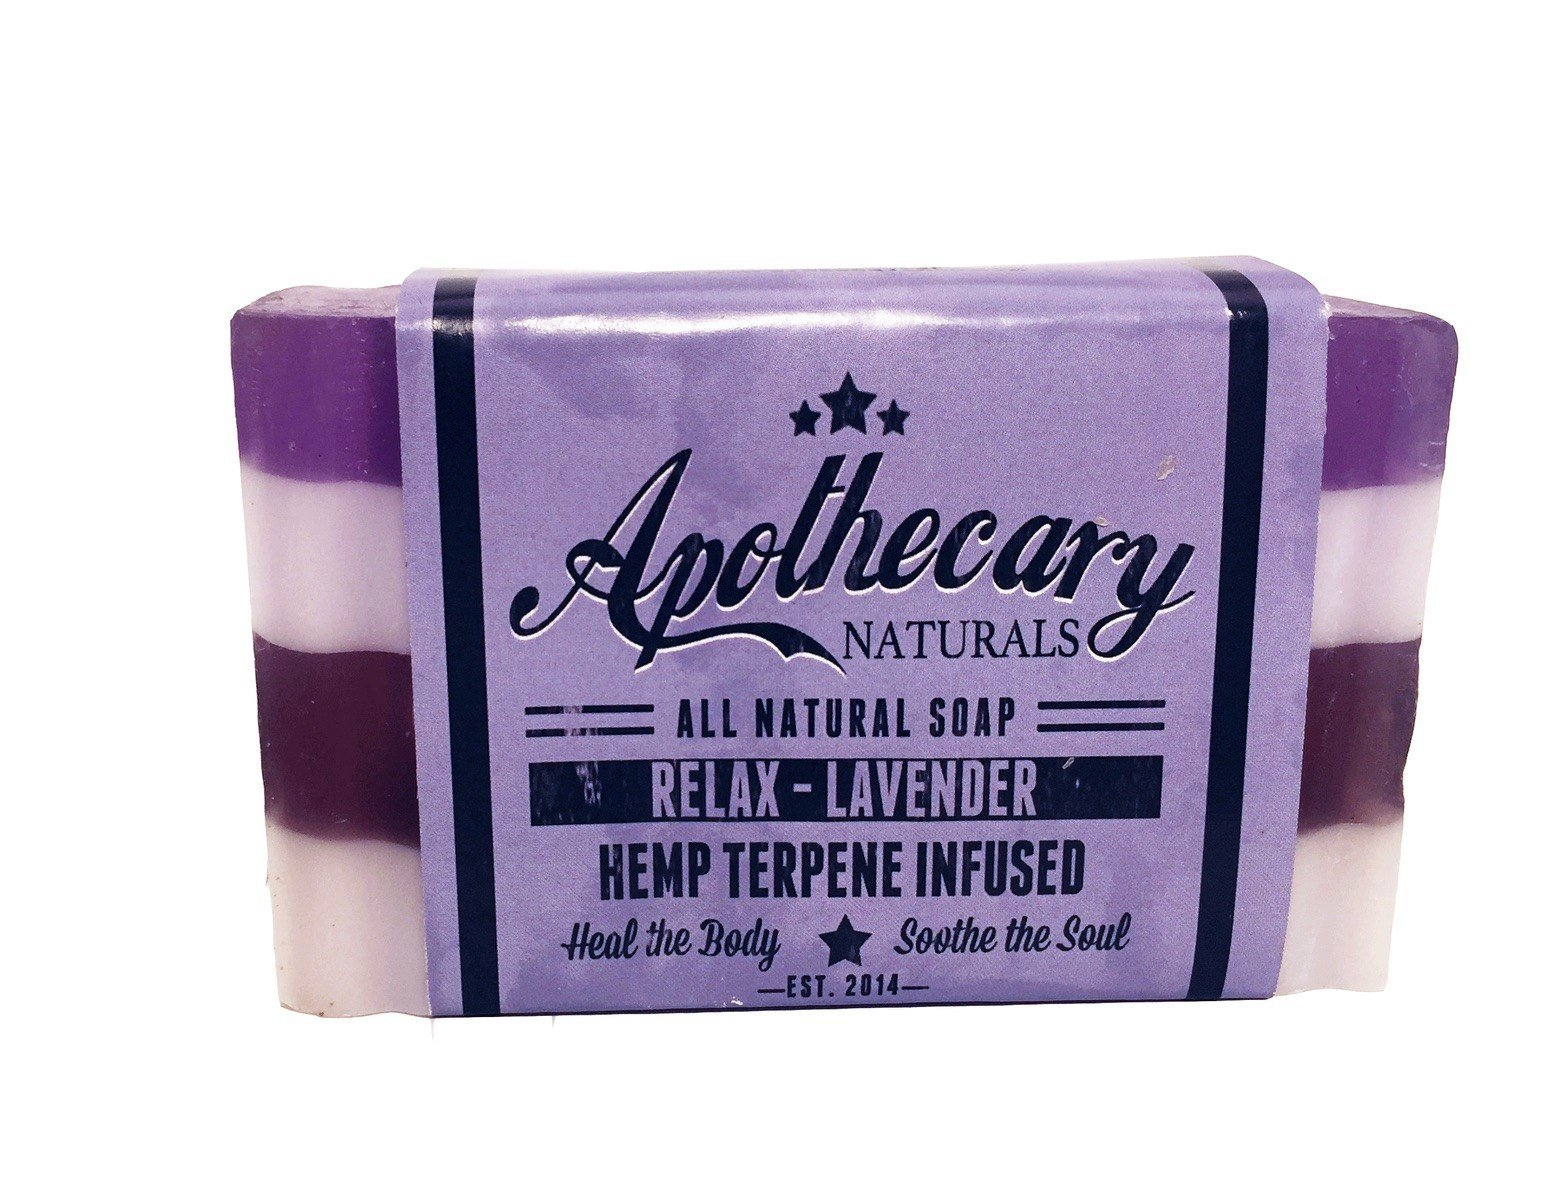 Apothecary Organic CBD Infused Medicated Soap – Relax Lavender 00103